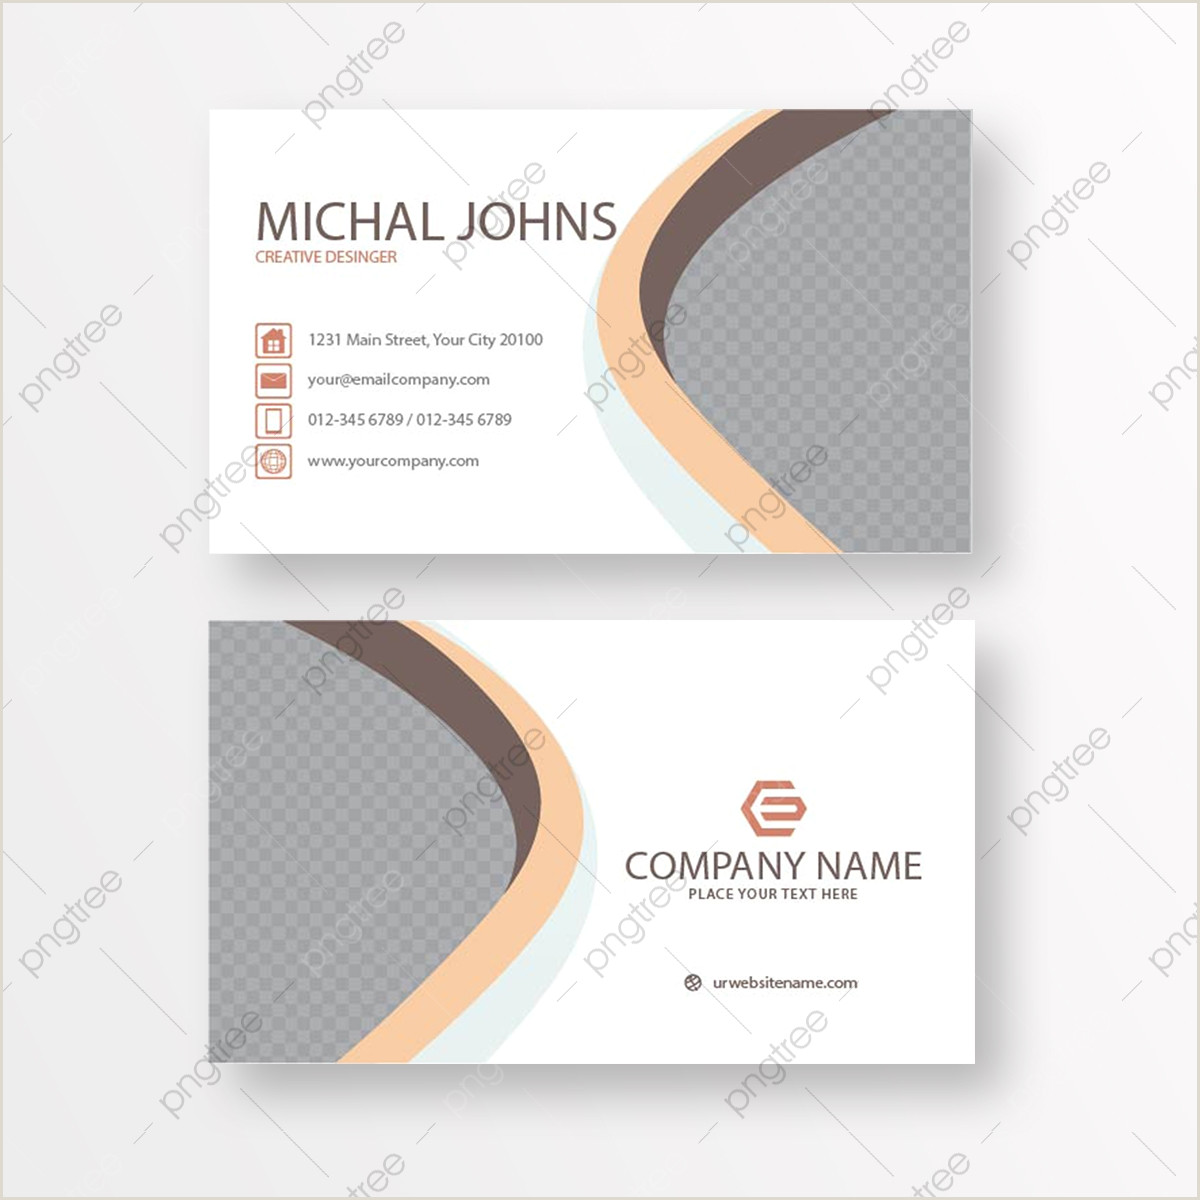 New Business Card Design Business Card Design Png